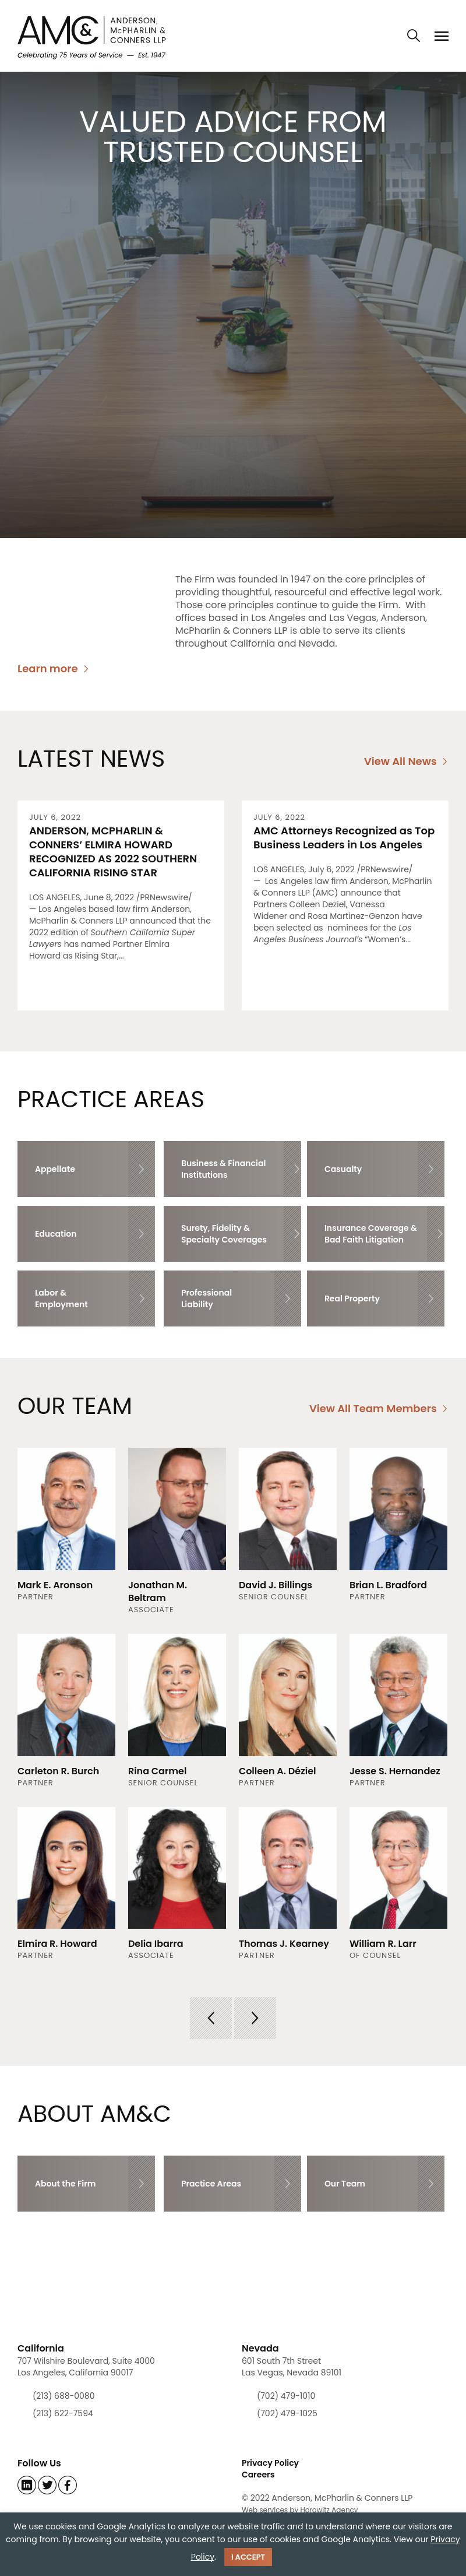 Anderson, McPharlin & Conners, LLP - Las Vegas NV Lawyers